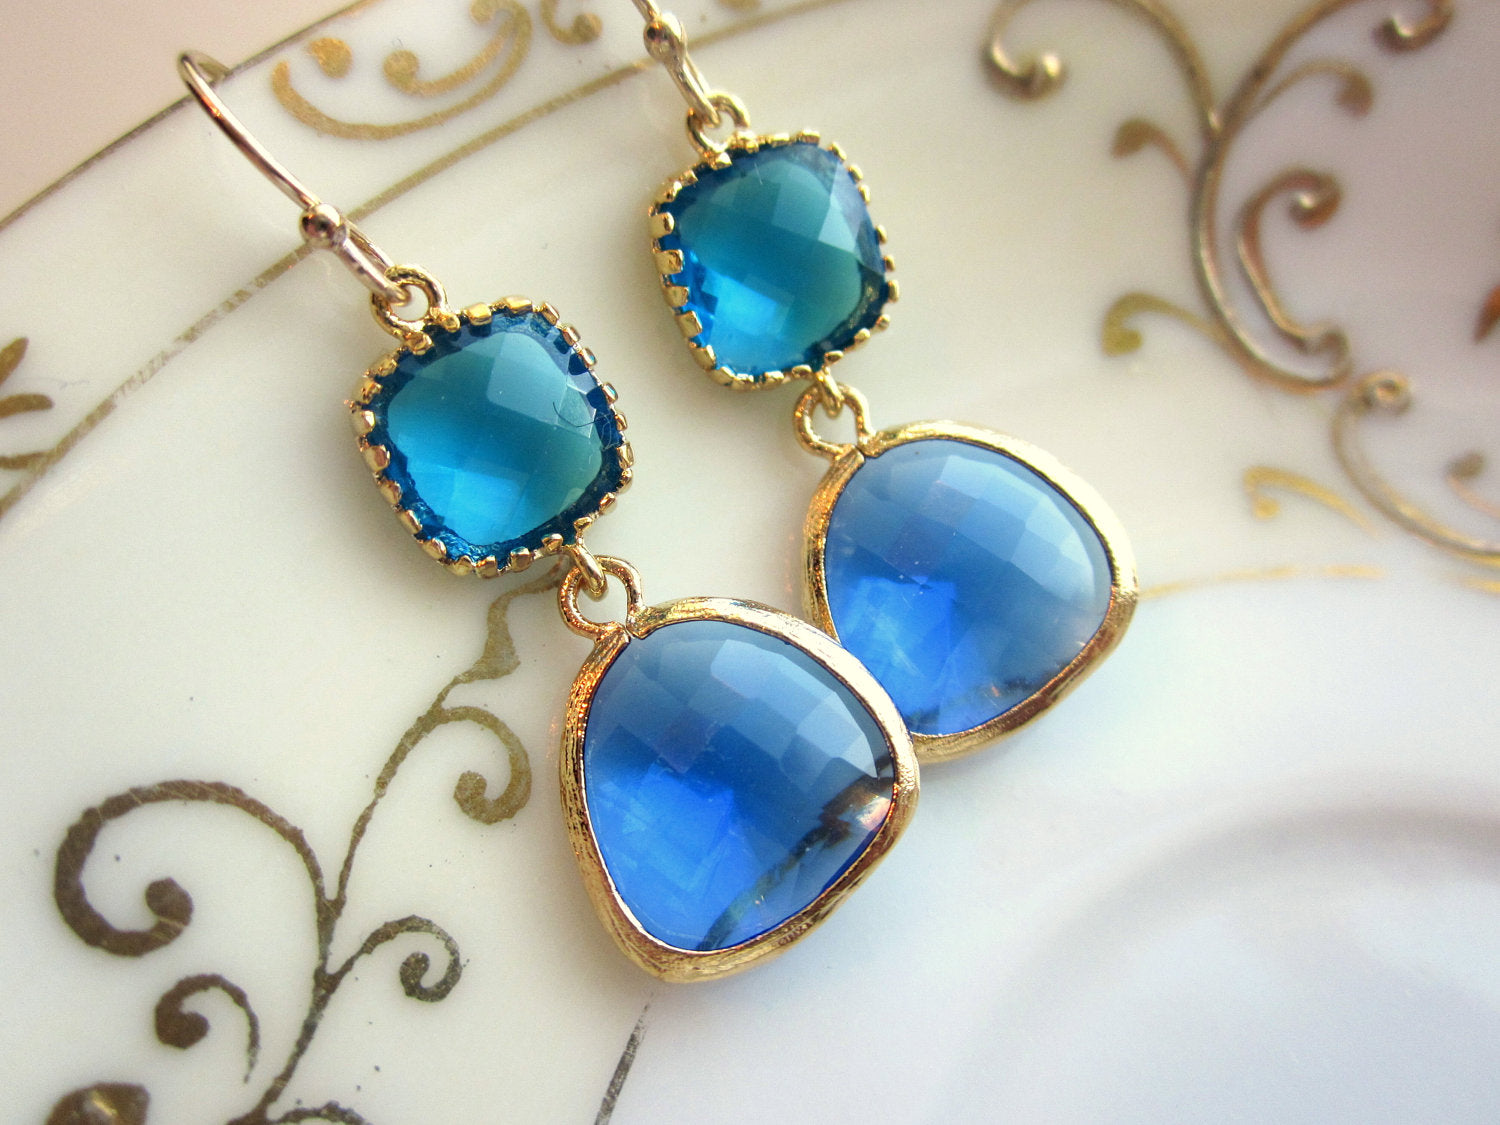 Cobalt Blue Earrings Capri Blue Gold Two Tier Earrings - Bridesmaid Earrings Wedding Earrings Valentines Day Gift